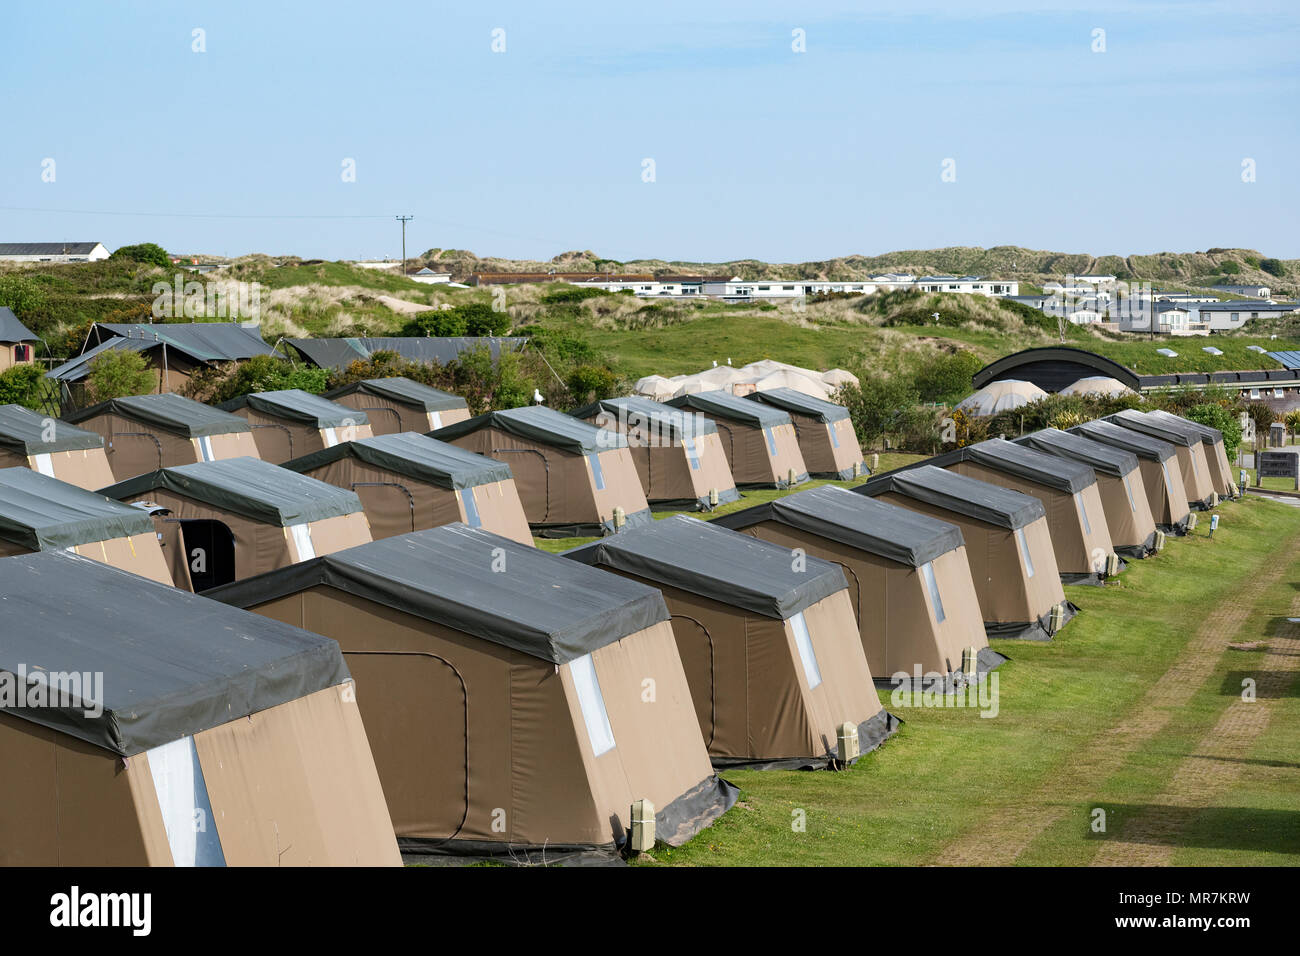 pre erected tents on a campsite in perranporth, cornwall, england, britain, uk, - Stock Image